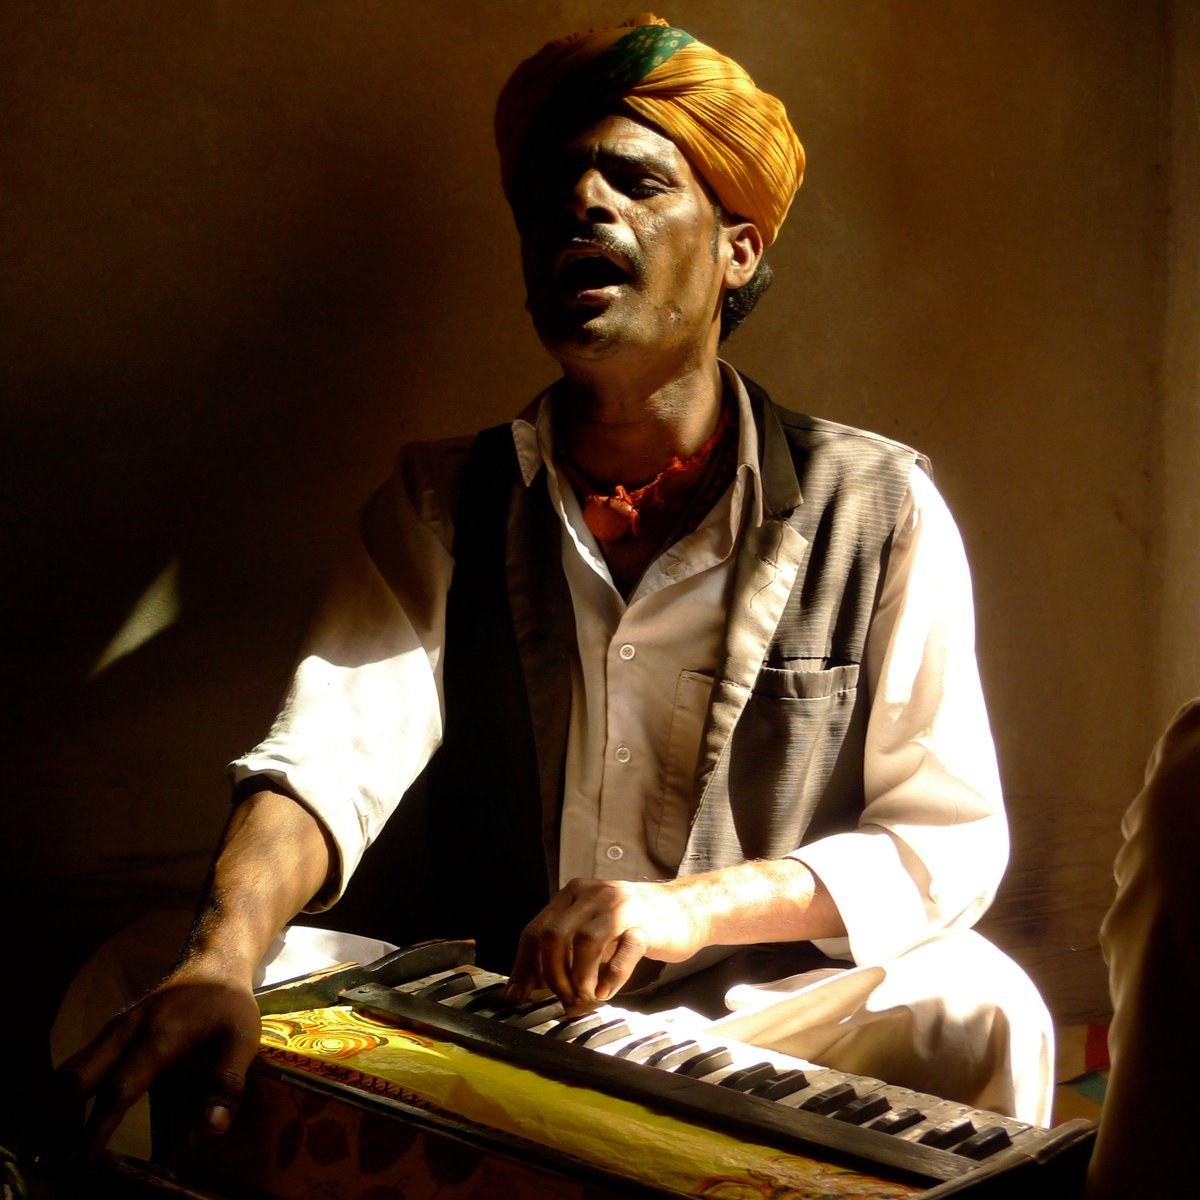 Tomorrow, join us for soul-stirring music from #Rajasthan, #India, to kick off Transcendence: A Virtual #SufiMusic Festival!  Masters of #qawwali led by Anwar Khan will demonstrate a form of Sufi singing inspired by #poetry.   Wed., Sept. 16, 12 pm EDT: https://t.co/dphDimNLlY 🎶 https://t.co/9iPoqPB9RK